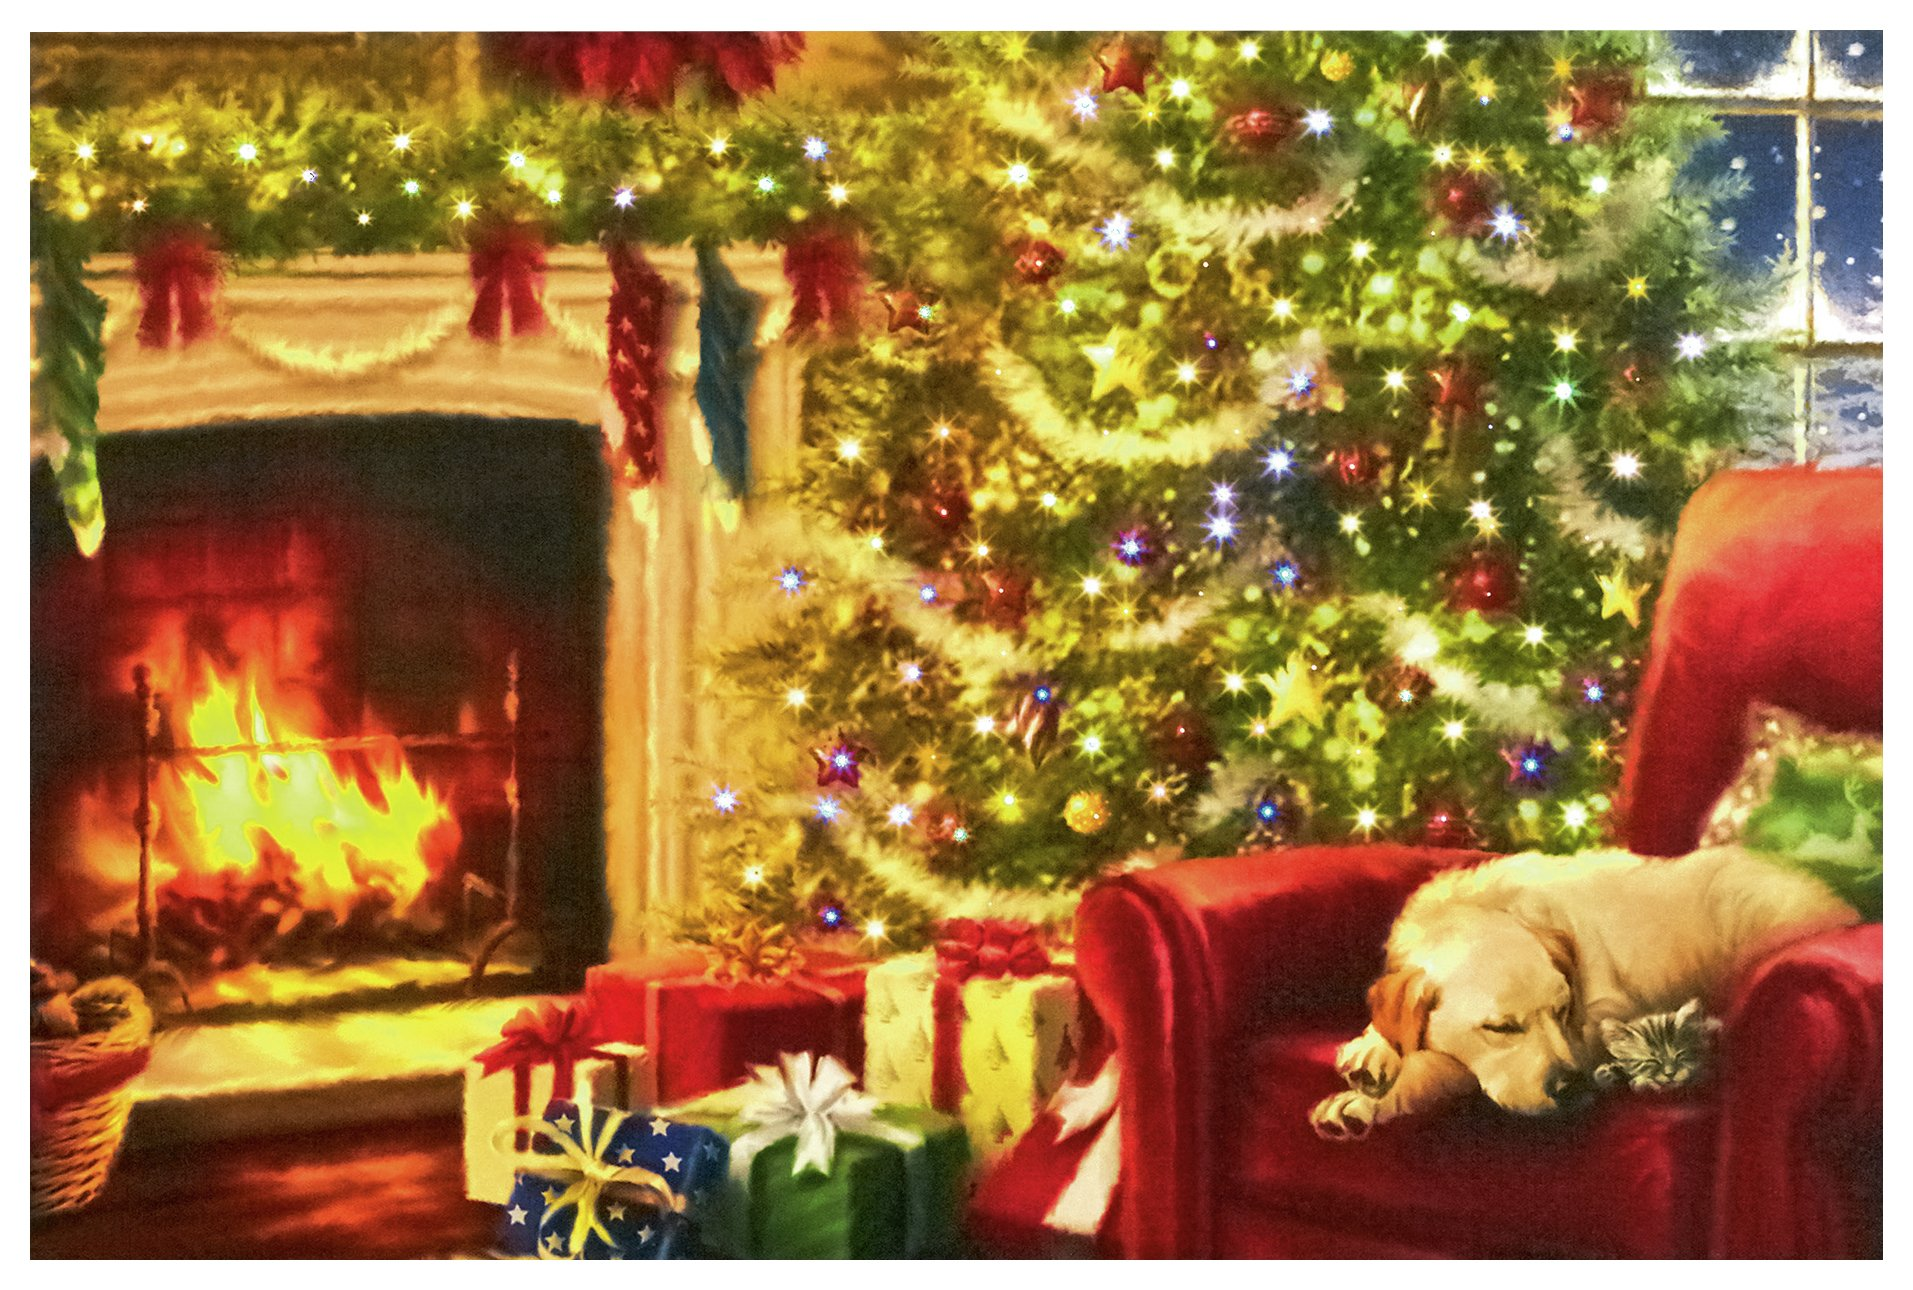 presents-by-fireplace-scene-led-canvas